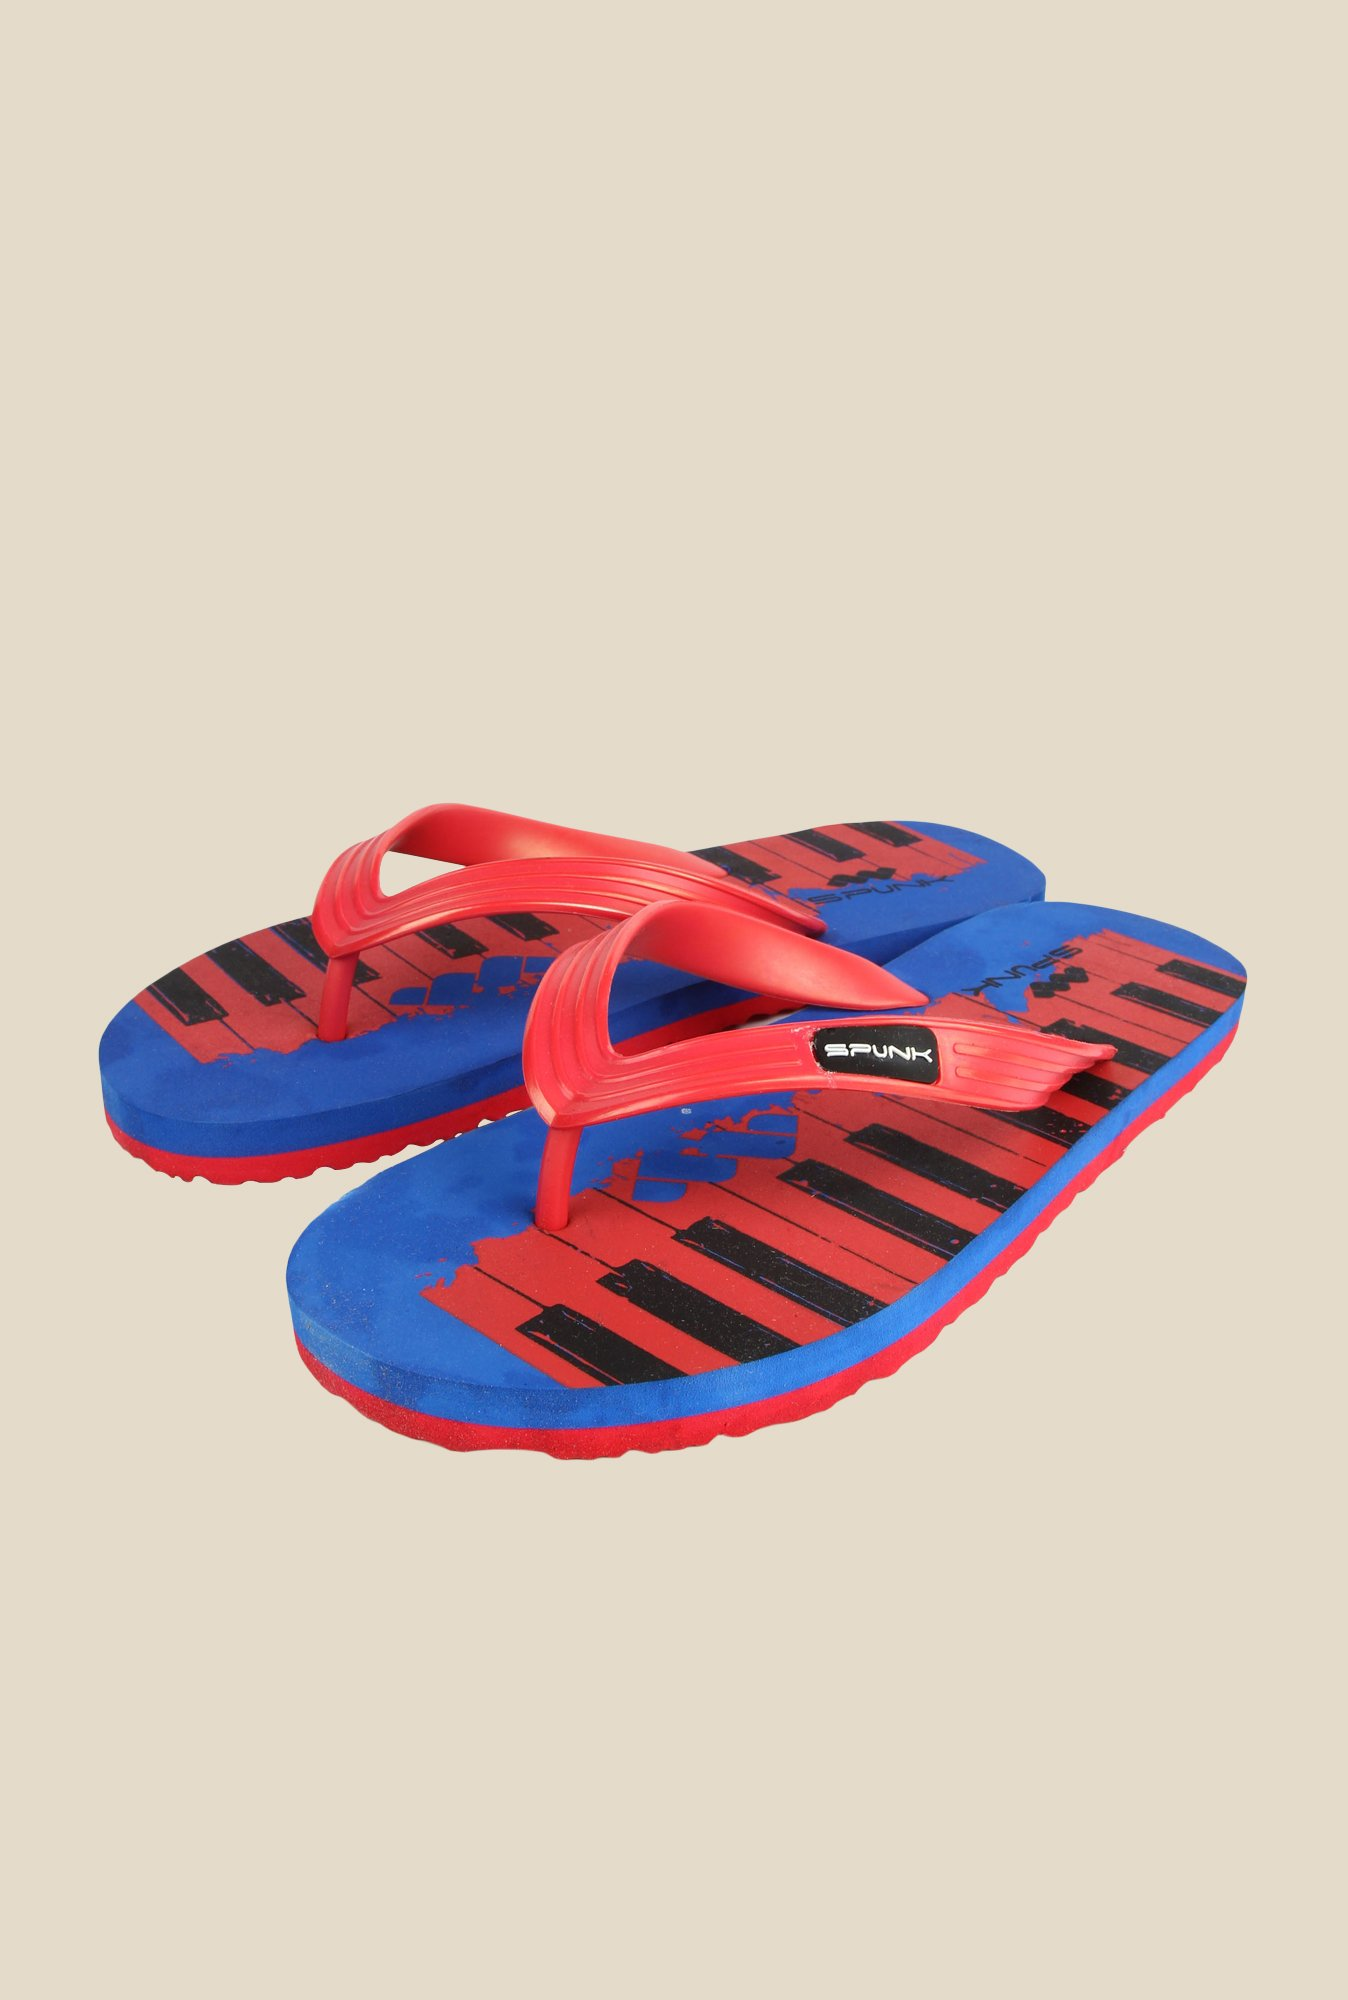 Spunk Piano Red & Blue Slippers